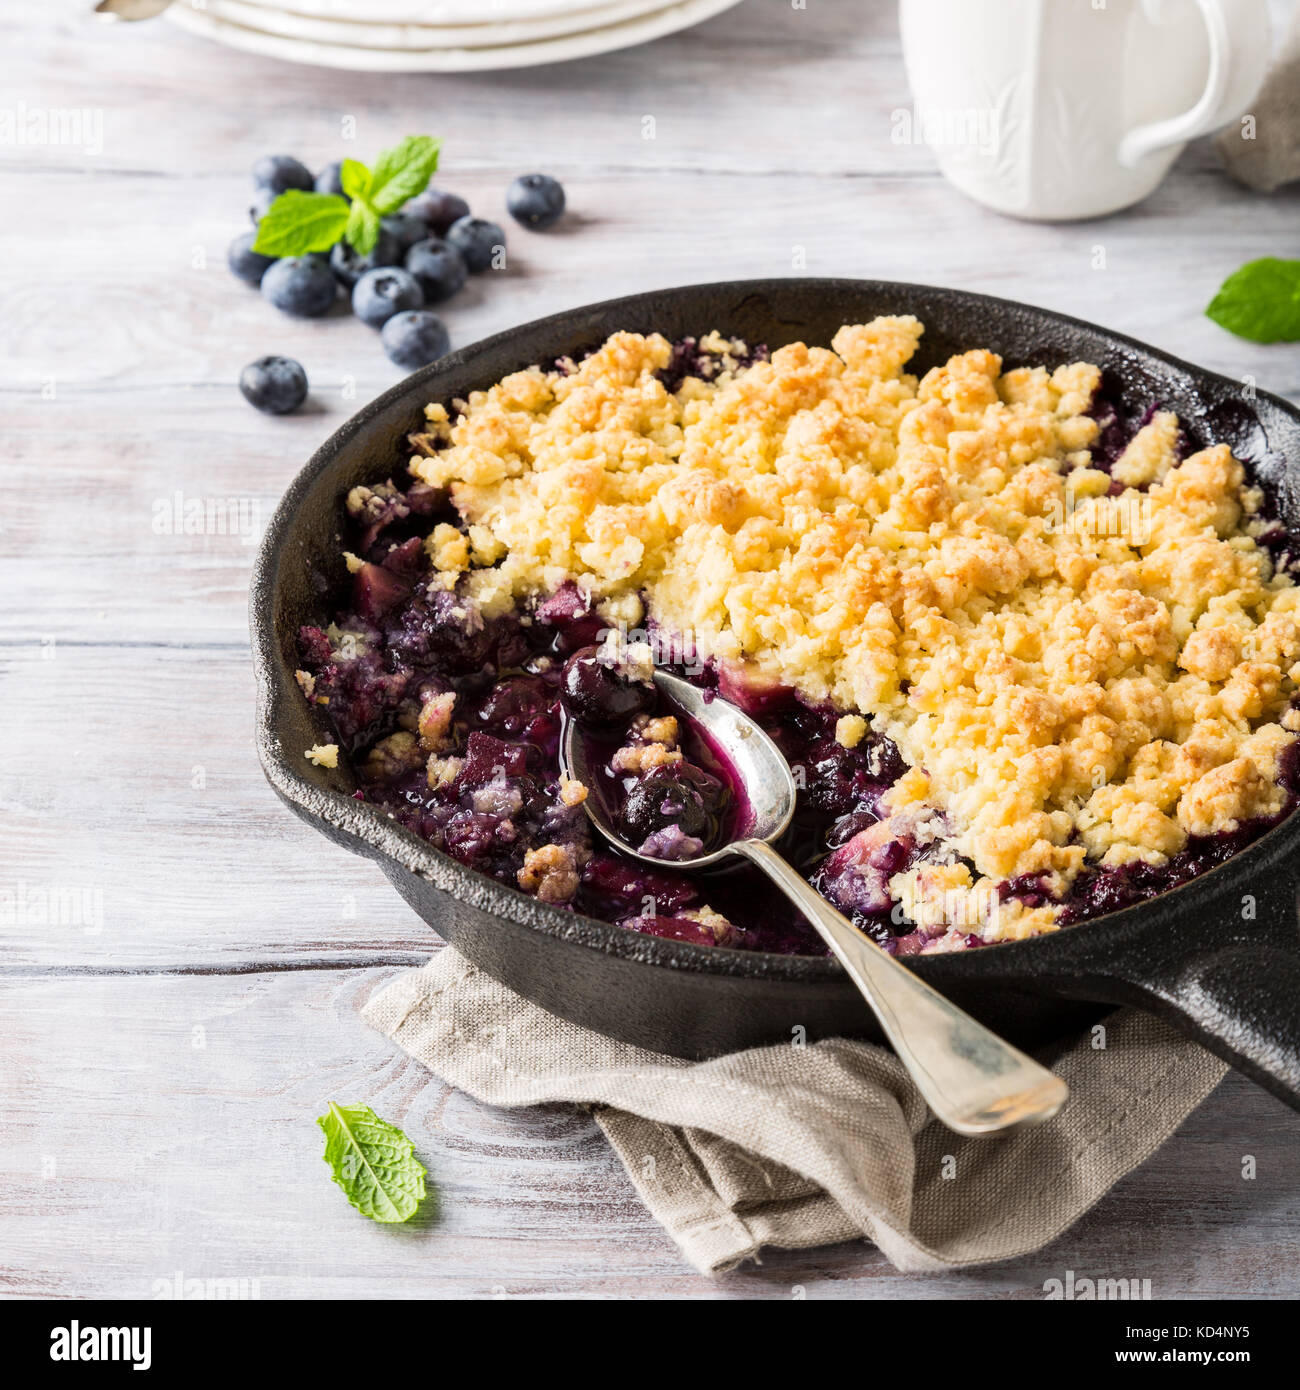 Coconut crumble in cast iron pan with fresh apples and blueberry. Healthy food concept. Stock Photo